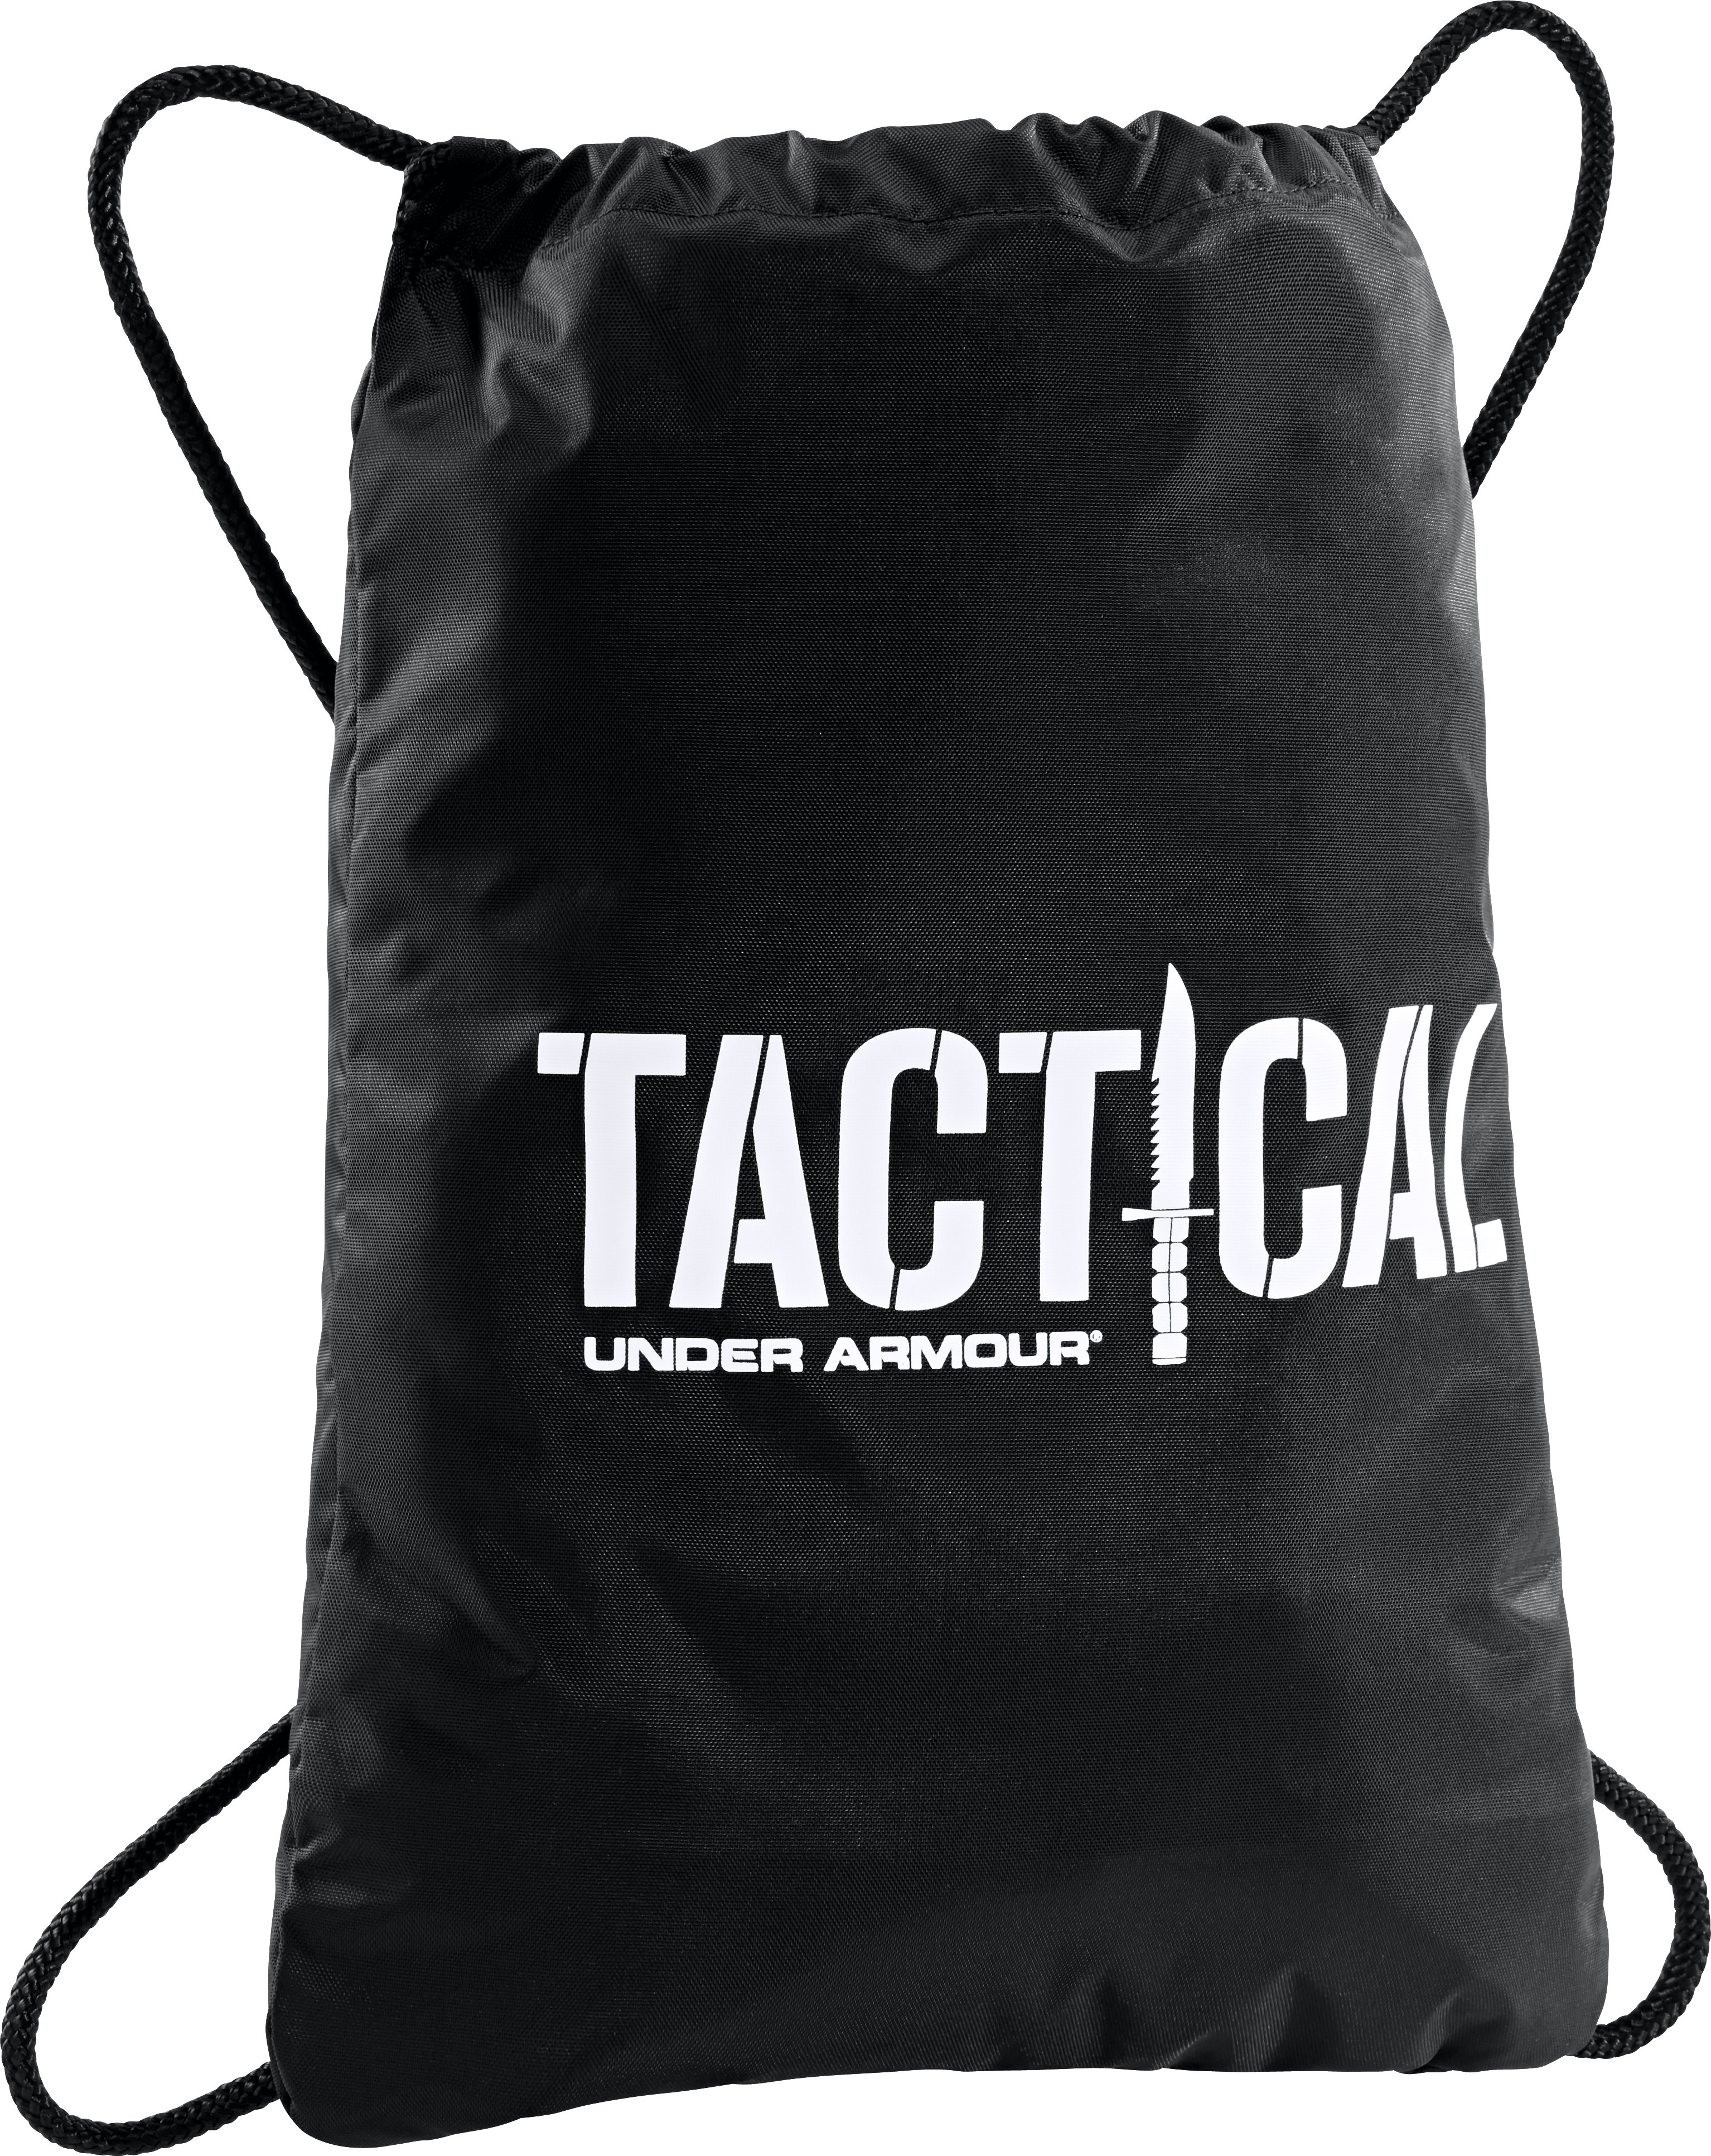 UA Tactical Sackpack, Black